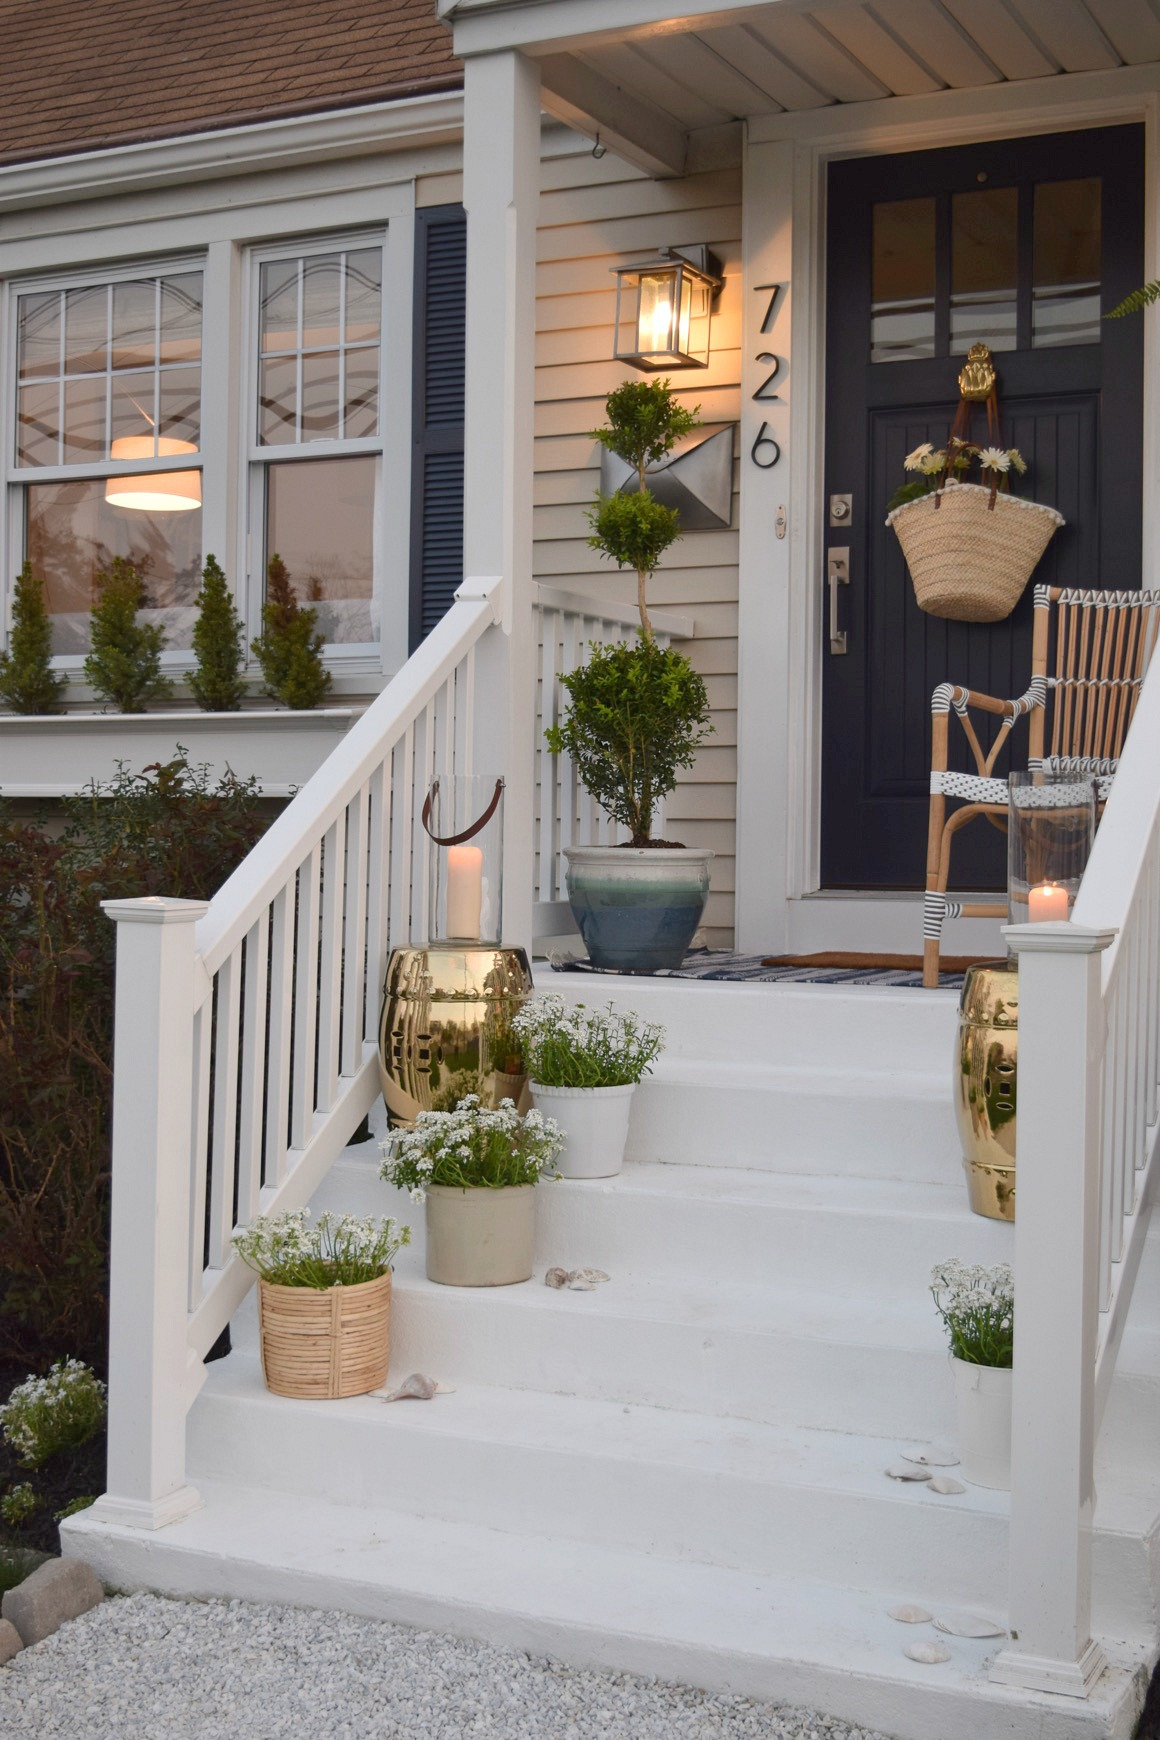 Front porch ideas and designing the outdoors nesting Front veranda decorating ideas